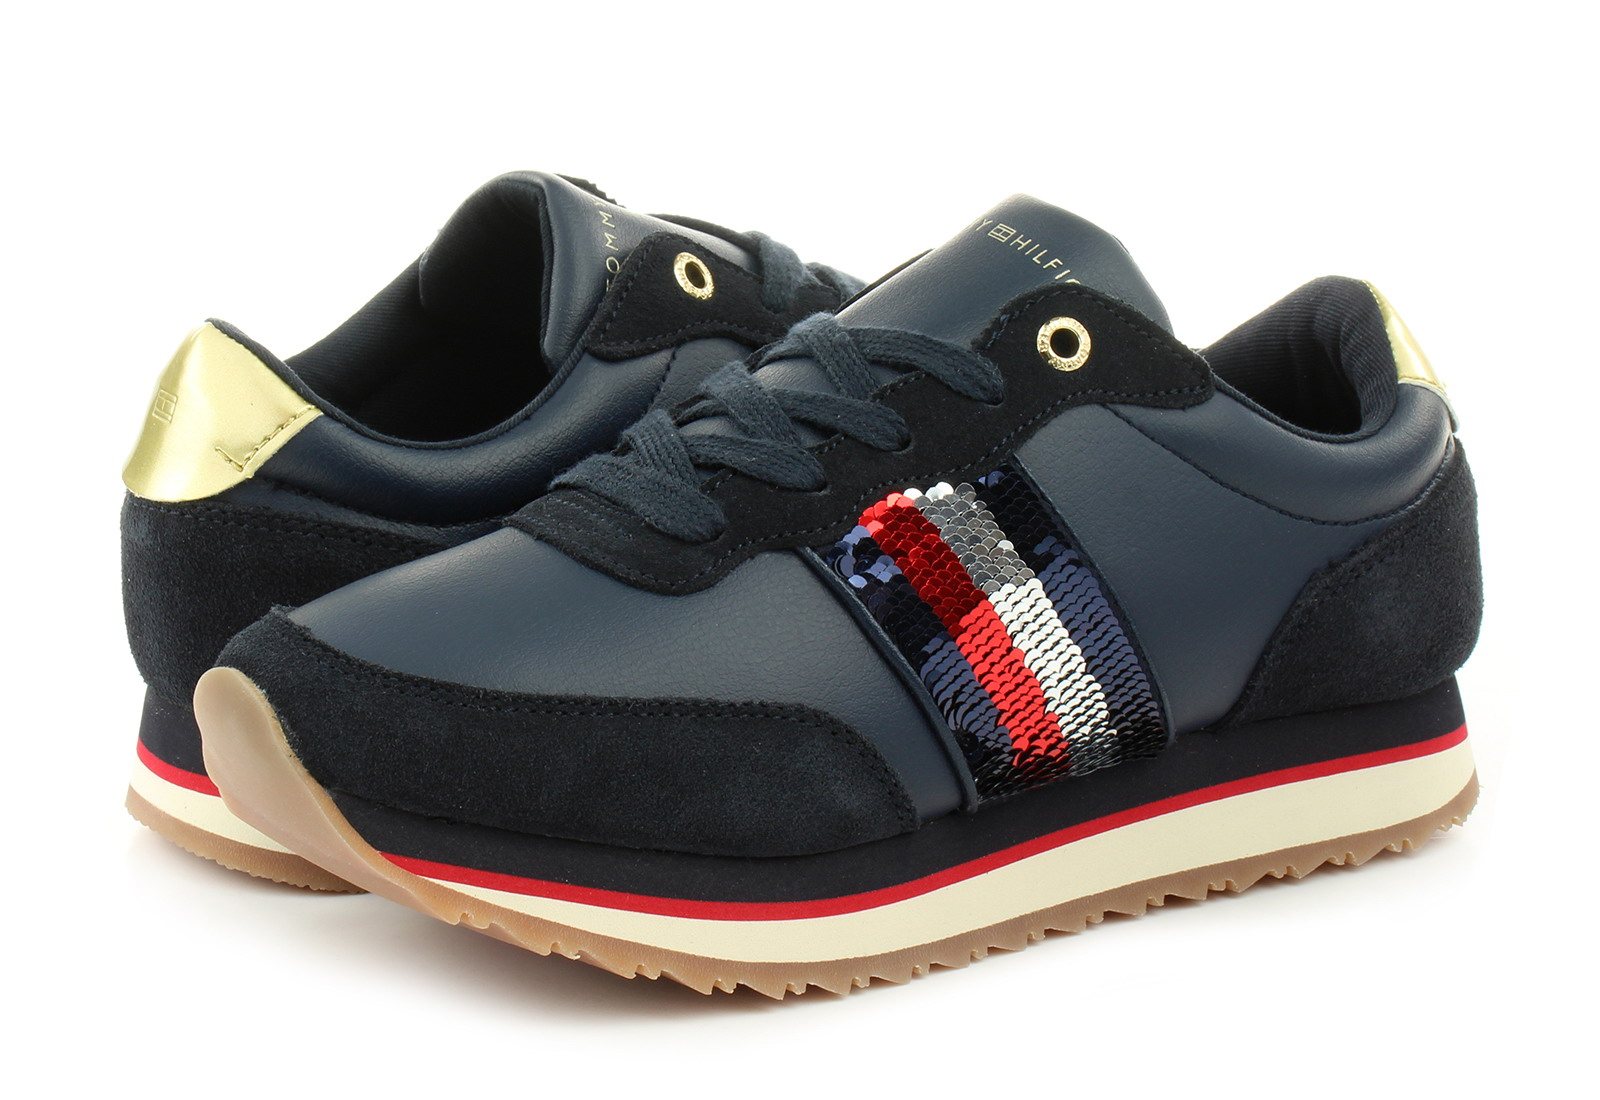 5798198fec Tommy Hilfiger Cipő - Angel 8c1 - 18H-3703-403 - Office Shoes ...